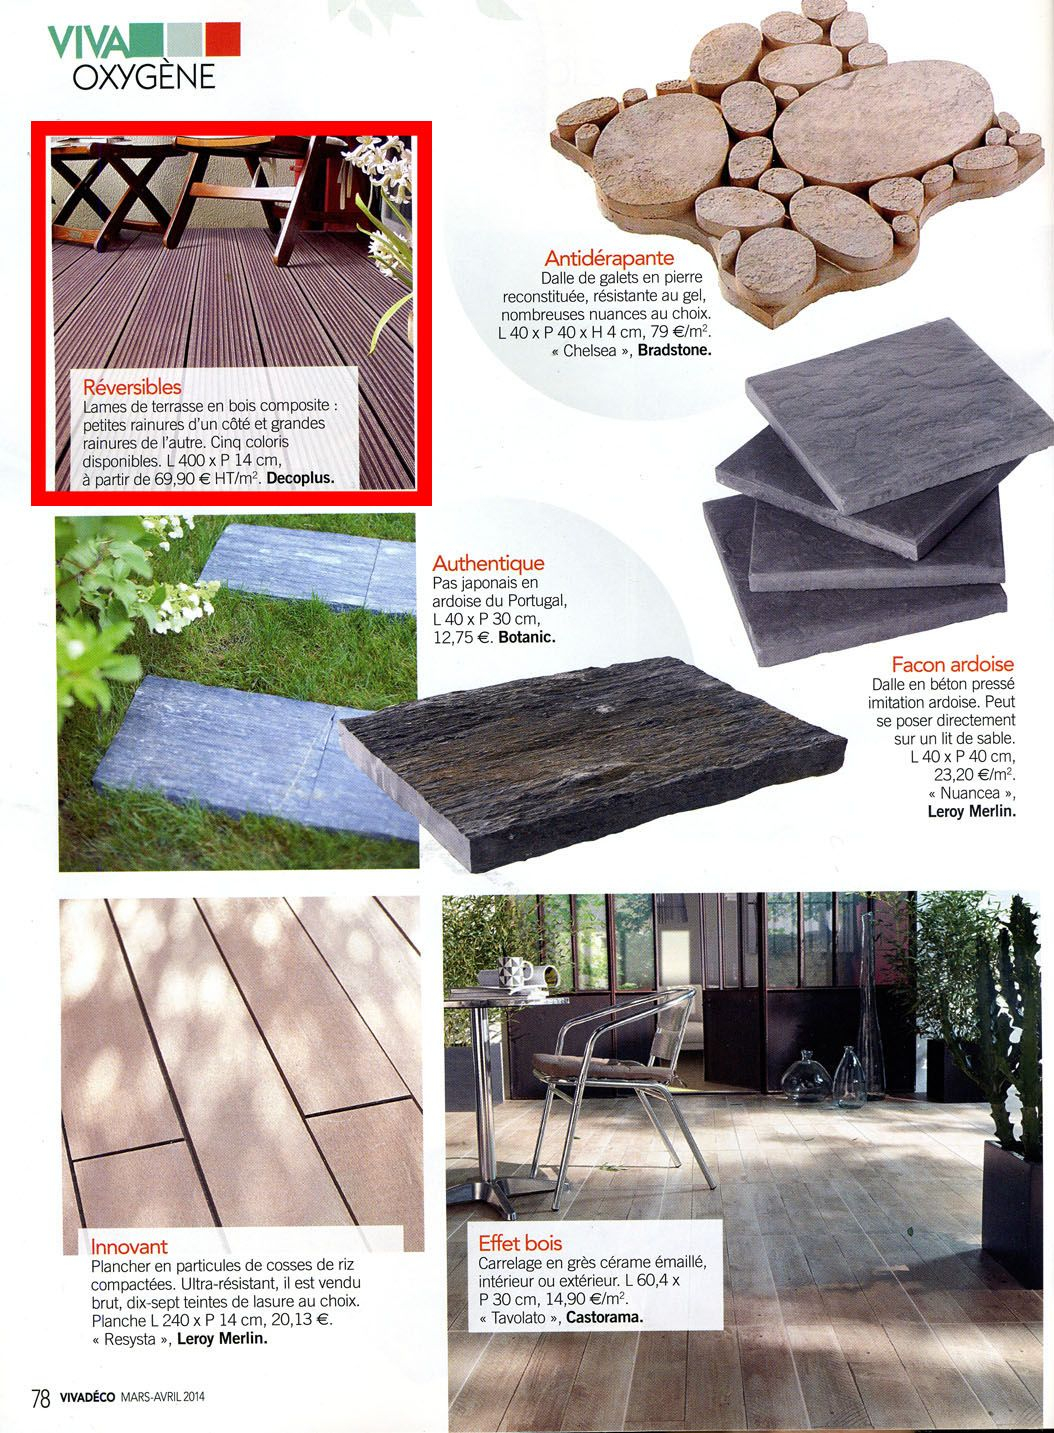 Balancelle Castorama Étonnant Decoplus In the Latest issue Of Viva Déco Magazine Press